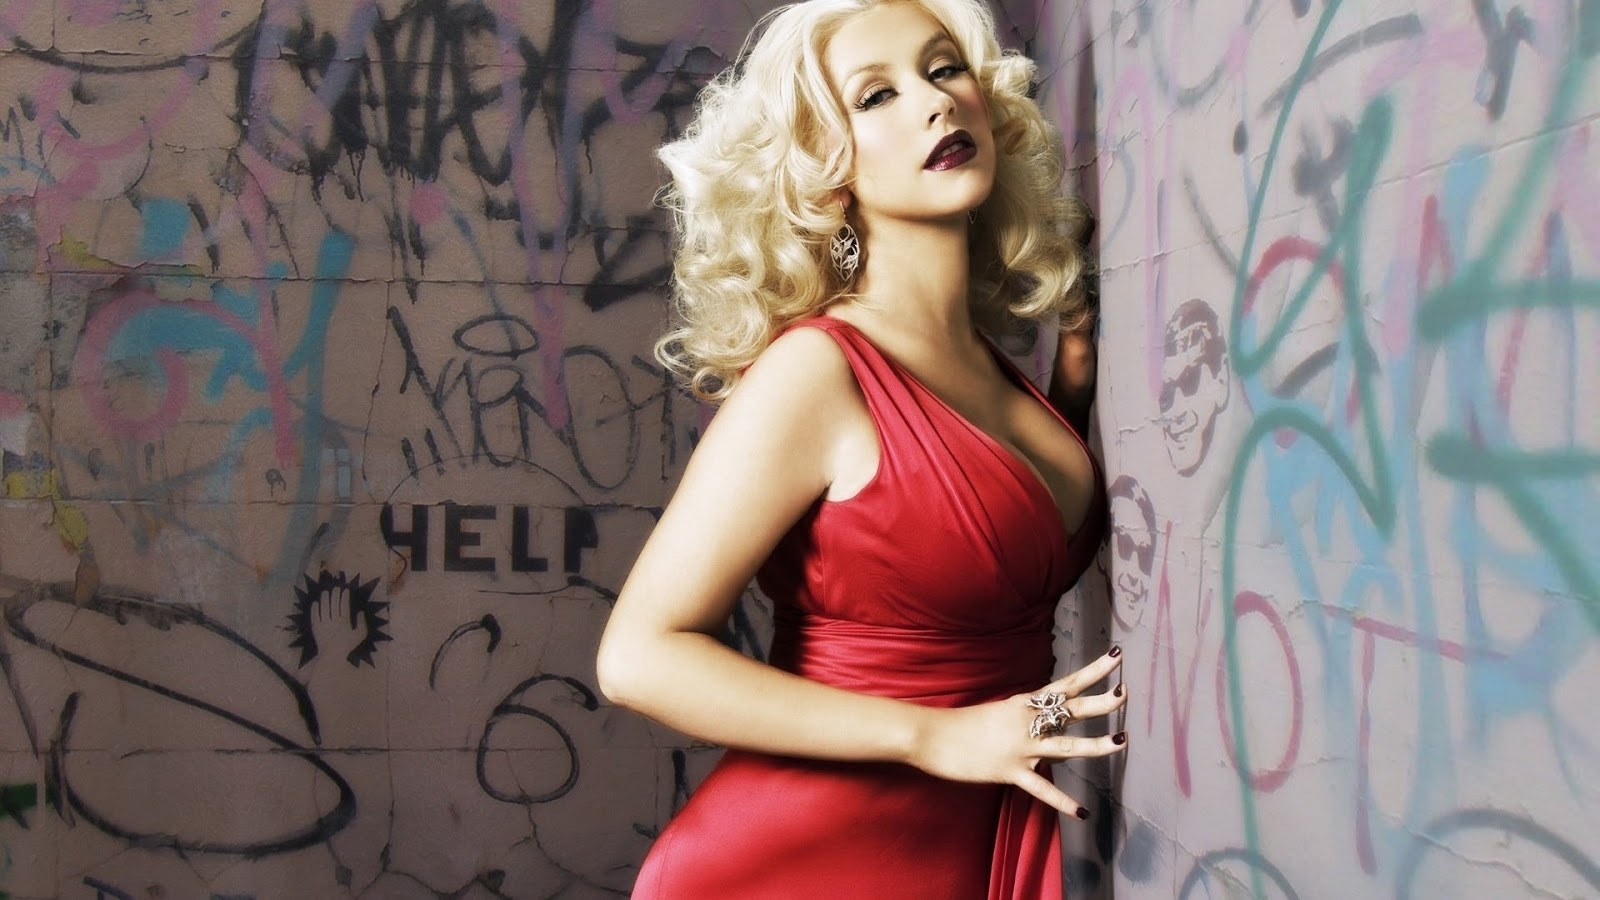 hd wallpapersChristina Aguilera hd picturesChristina Aguilera hd 1600x900